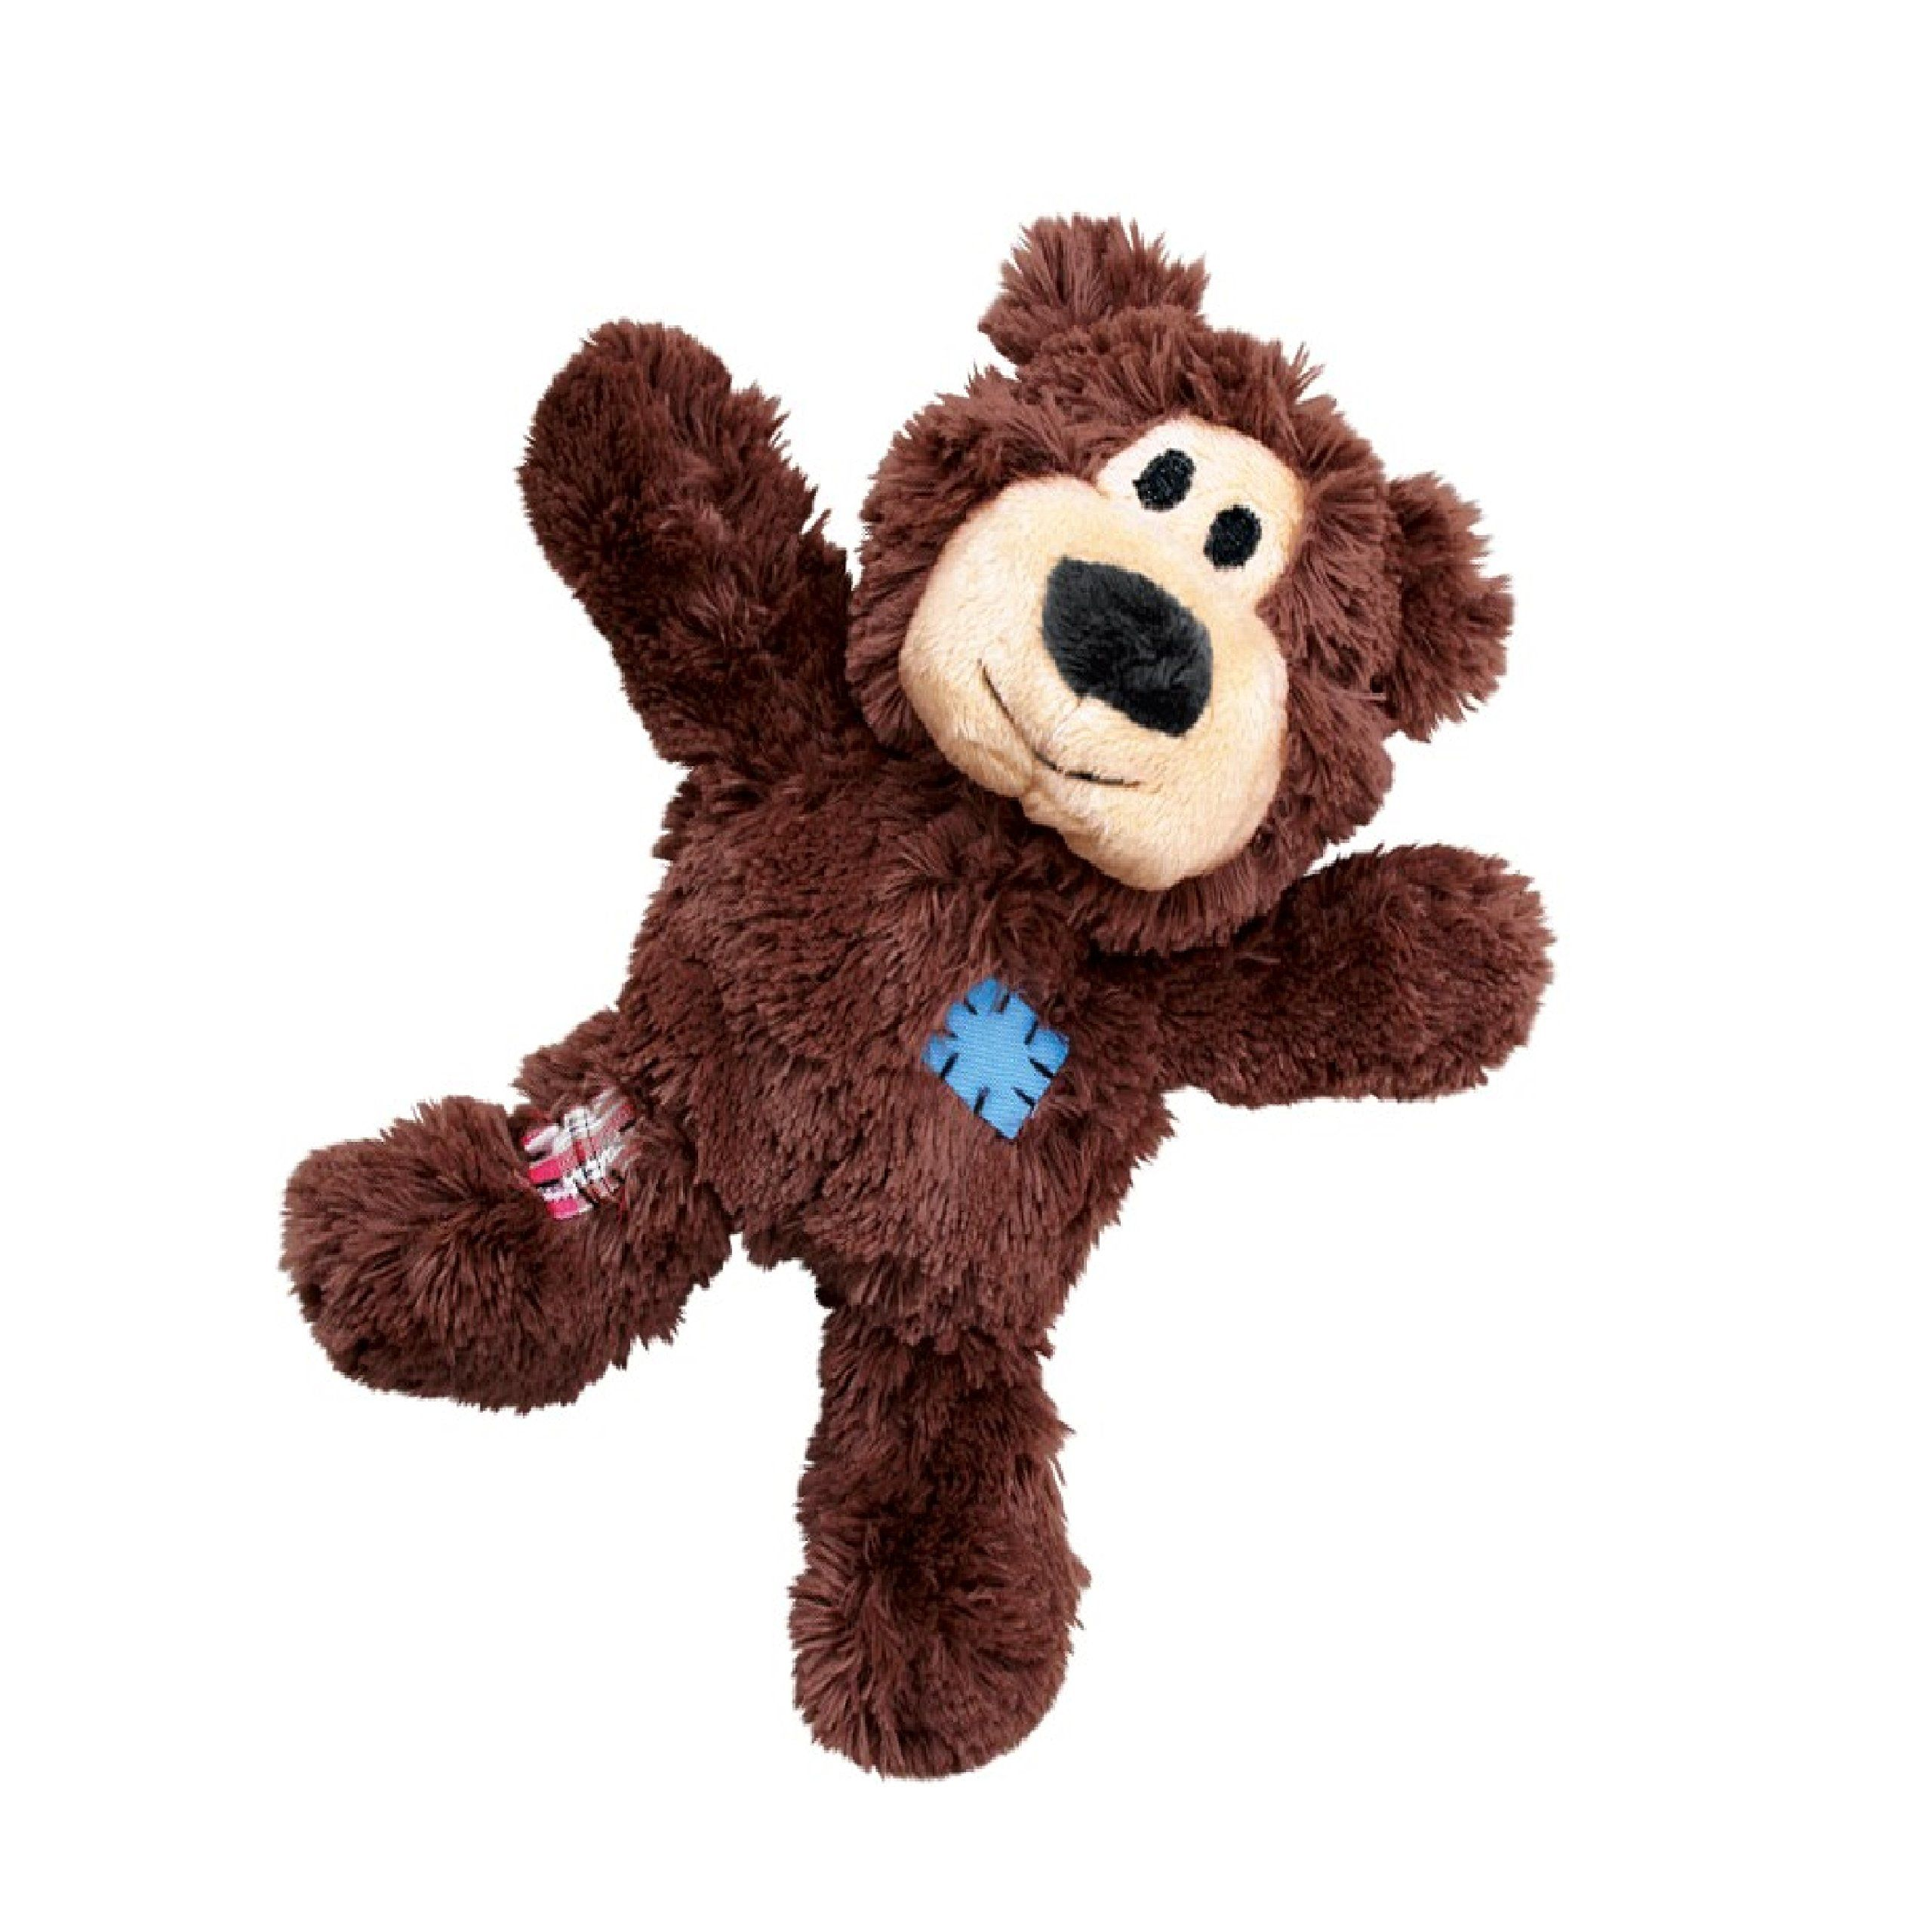 Kong Wild Knots Bear Dog Toy Small Medium Would Like To Know